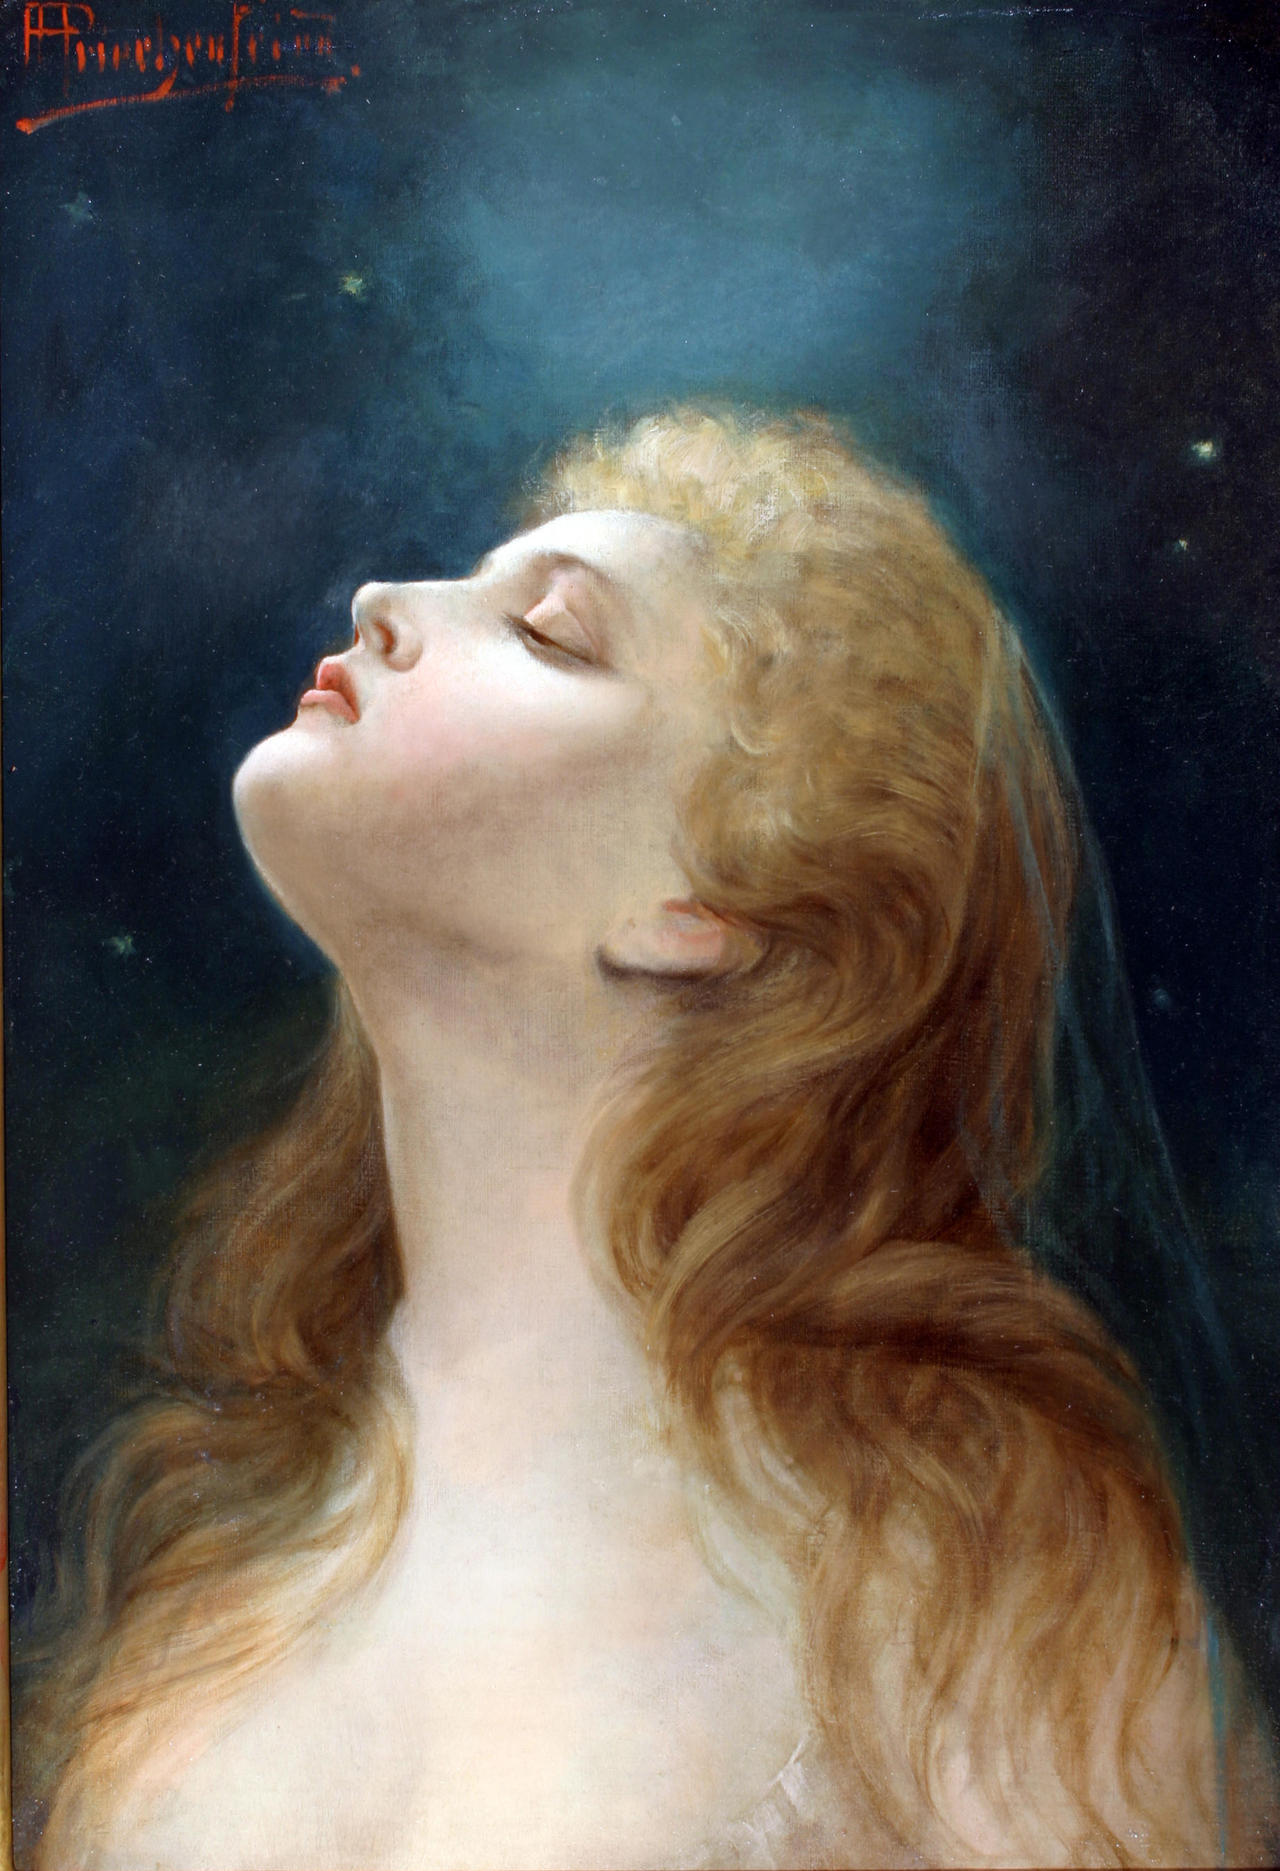 monsieurleprince:  Alois Heinrich Priechenfried (1867 - 1953) - A profile of a woman looking at the stars